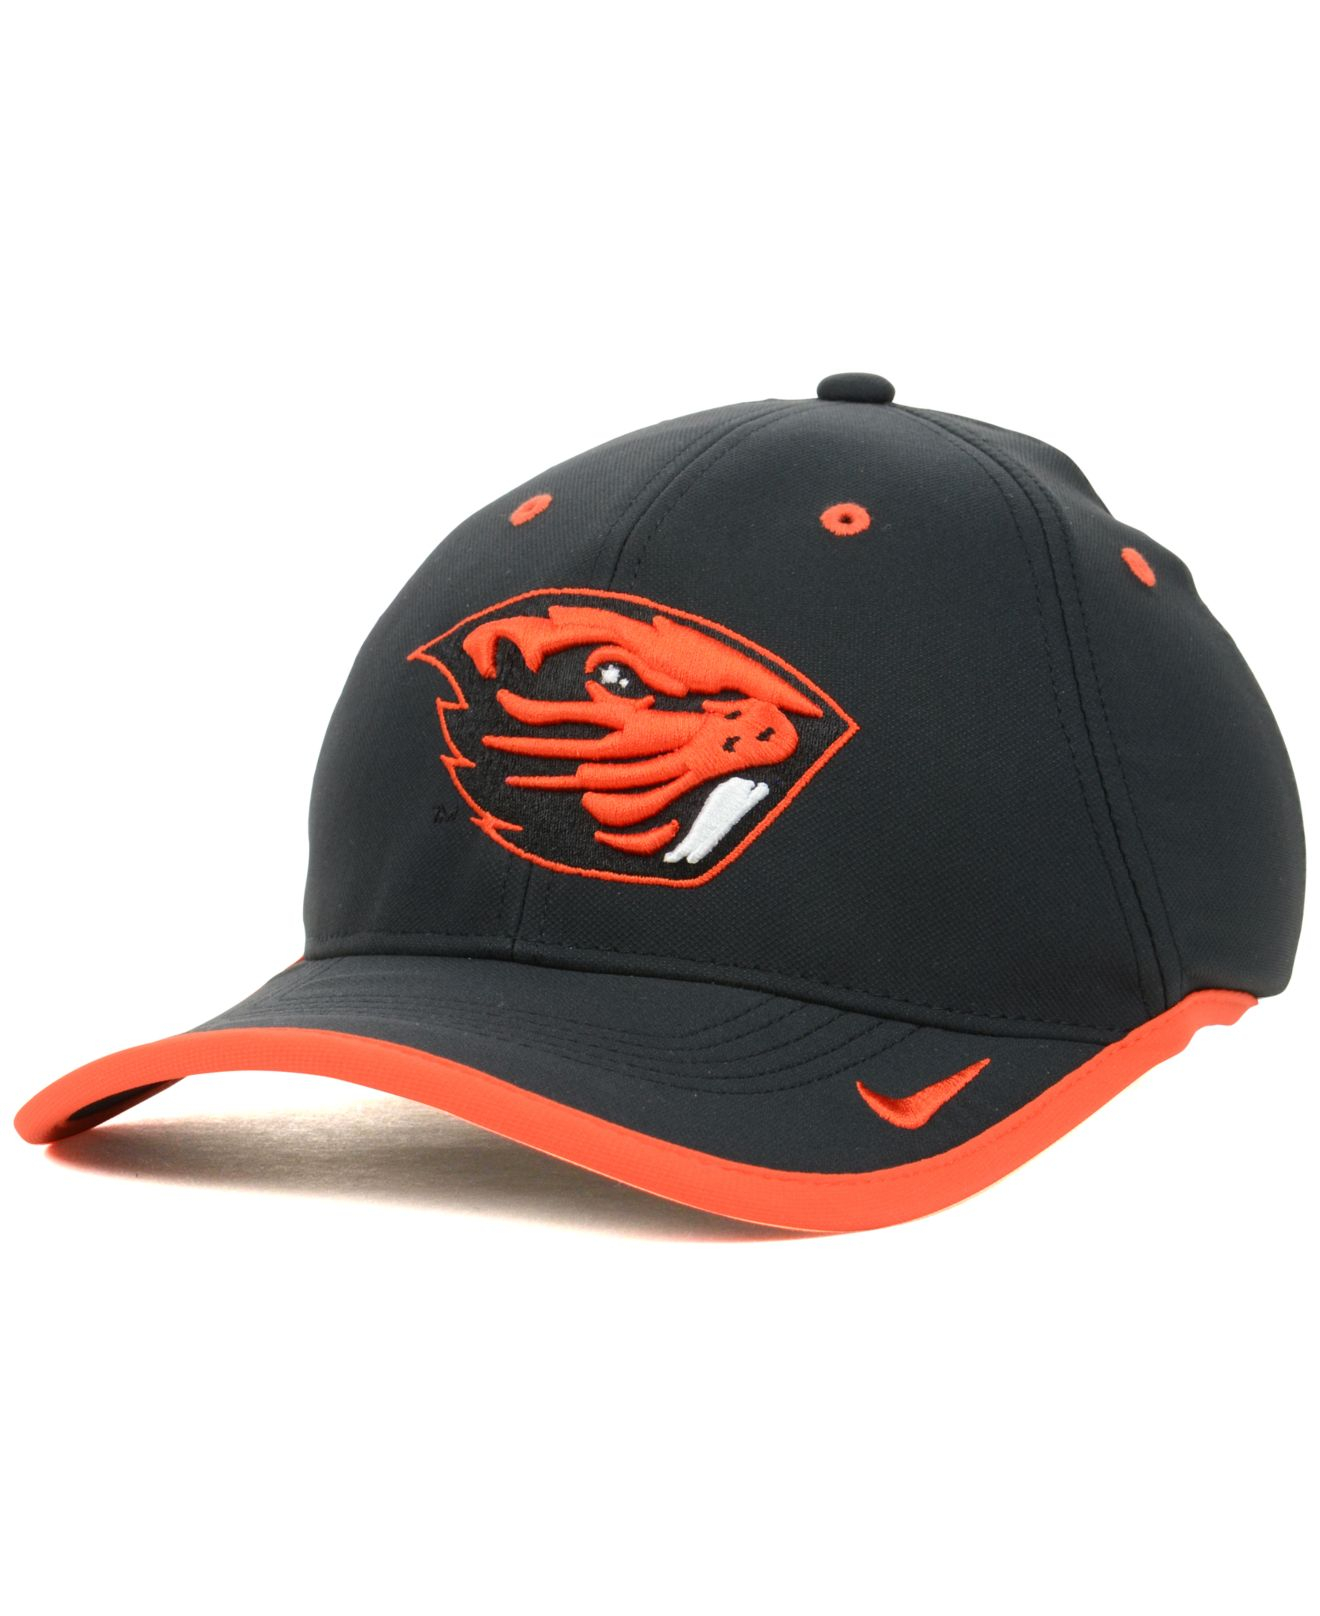 separation shoes 014bd 88cad ... cheap lyst nike oregon state beavers coaches dri fit cap in black for  men bfad3 b5ee4